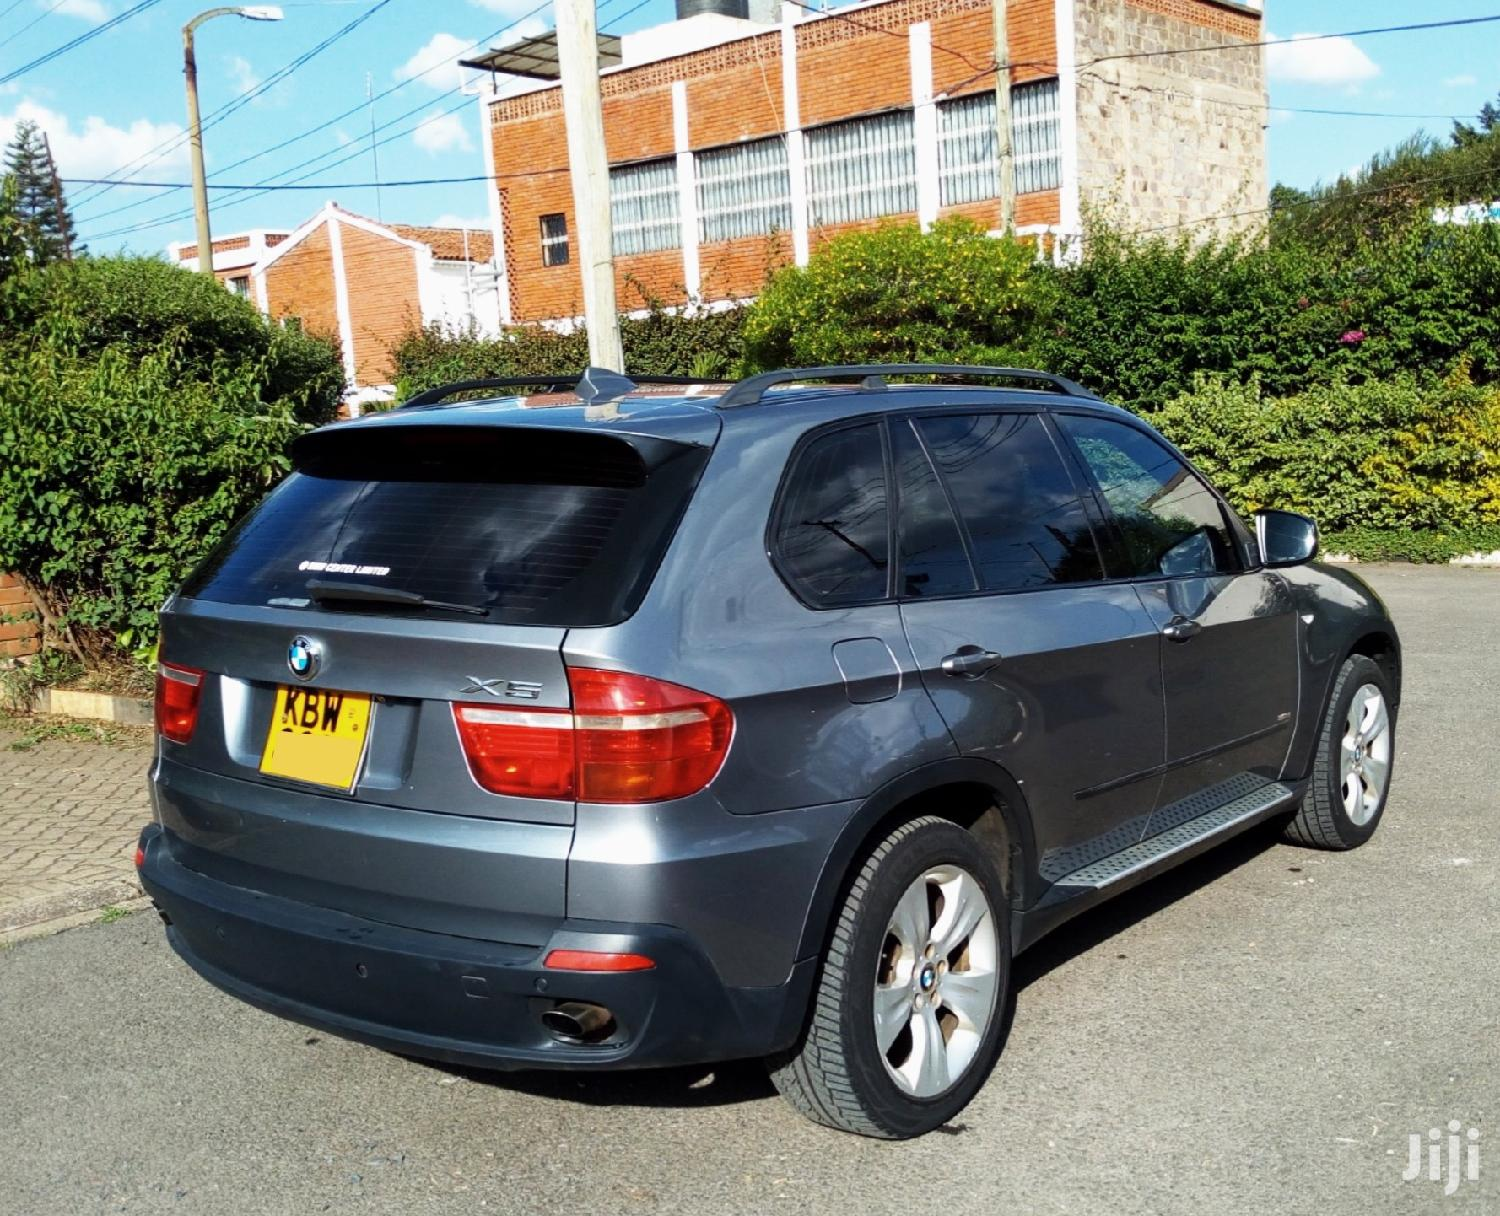 Archive: BMW X5 2007 Gray